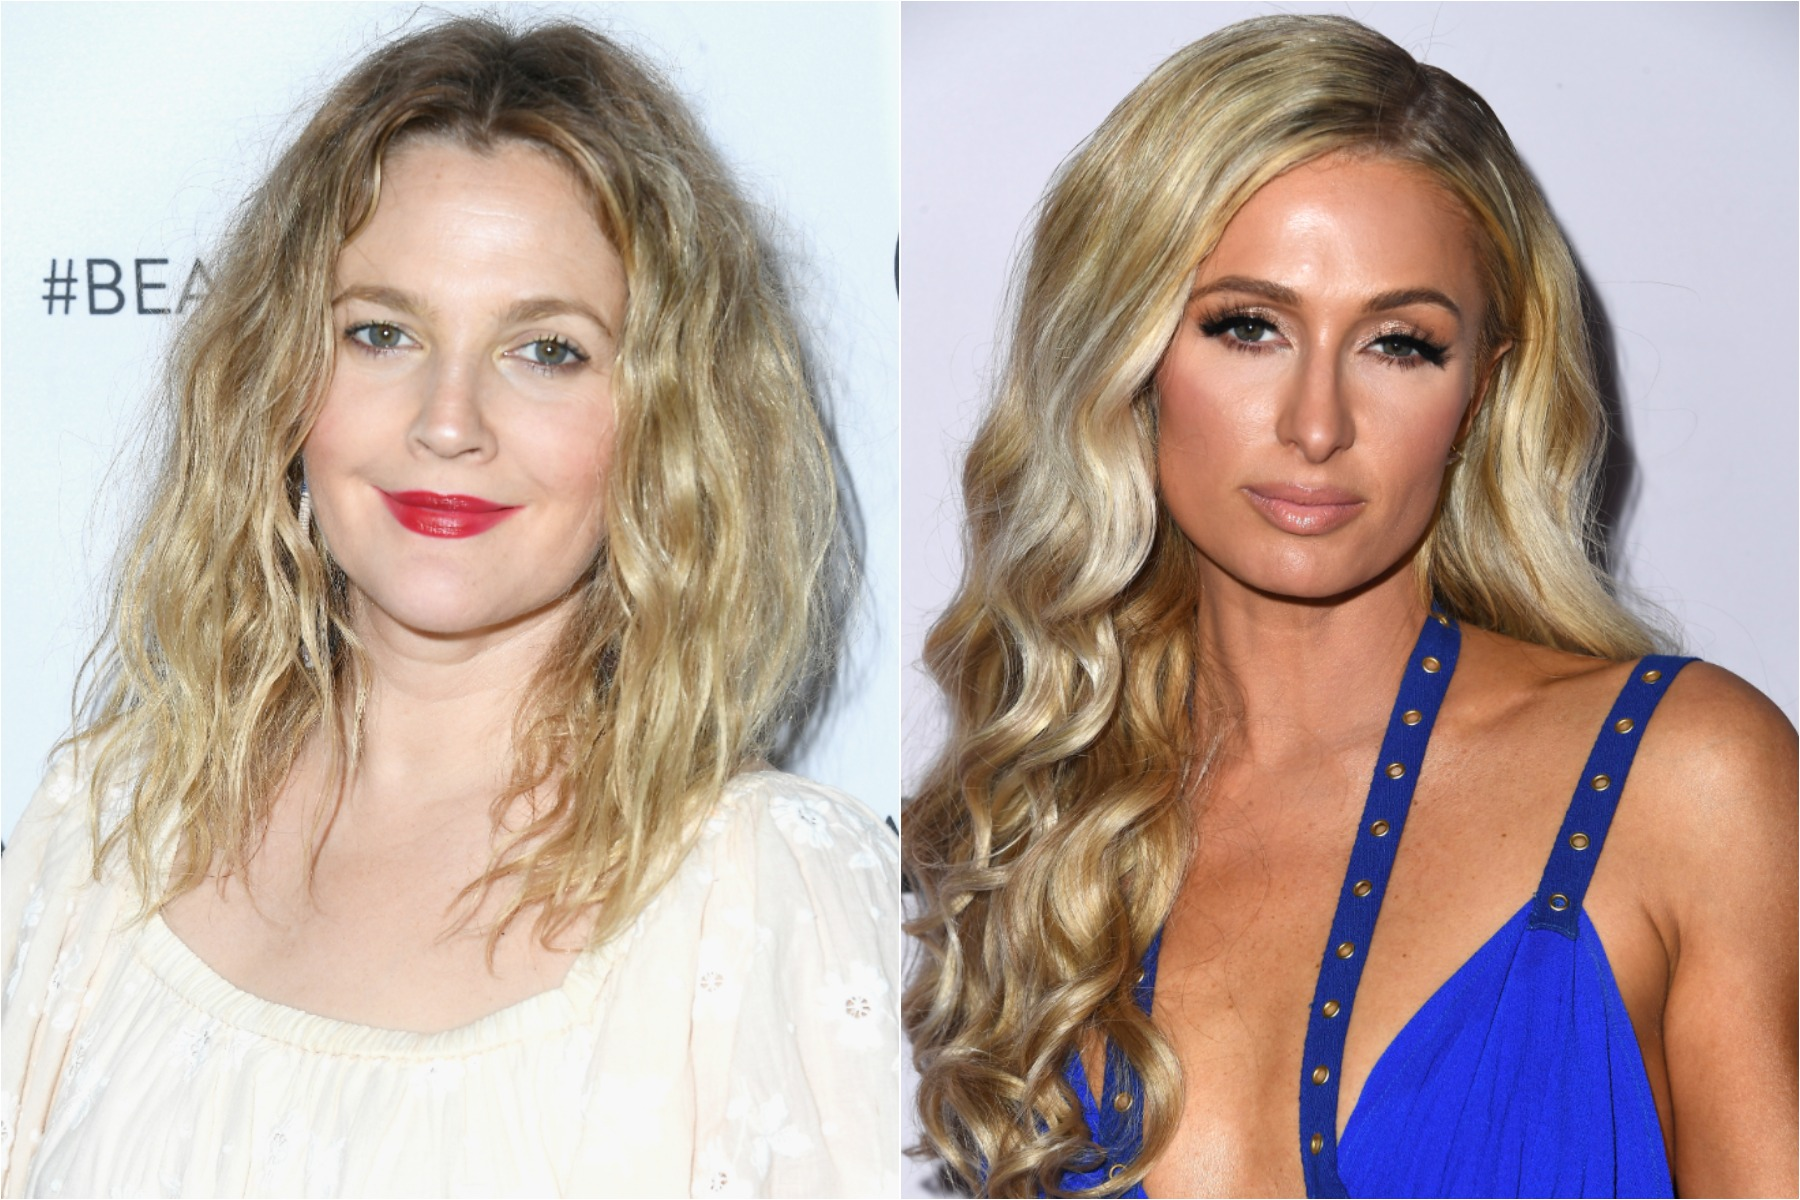 drew barrymore and paris hilton solitary confinment